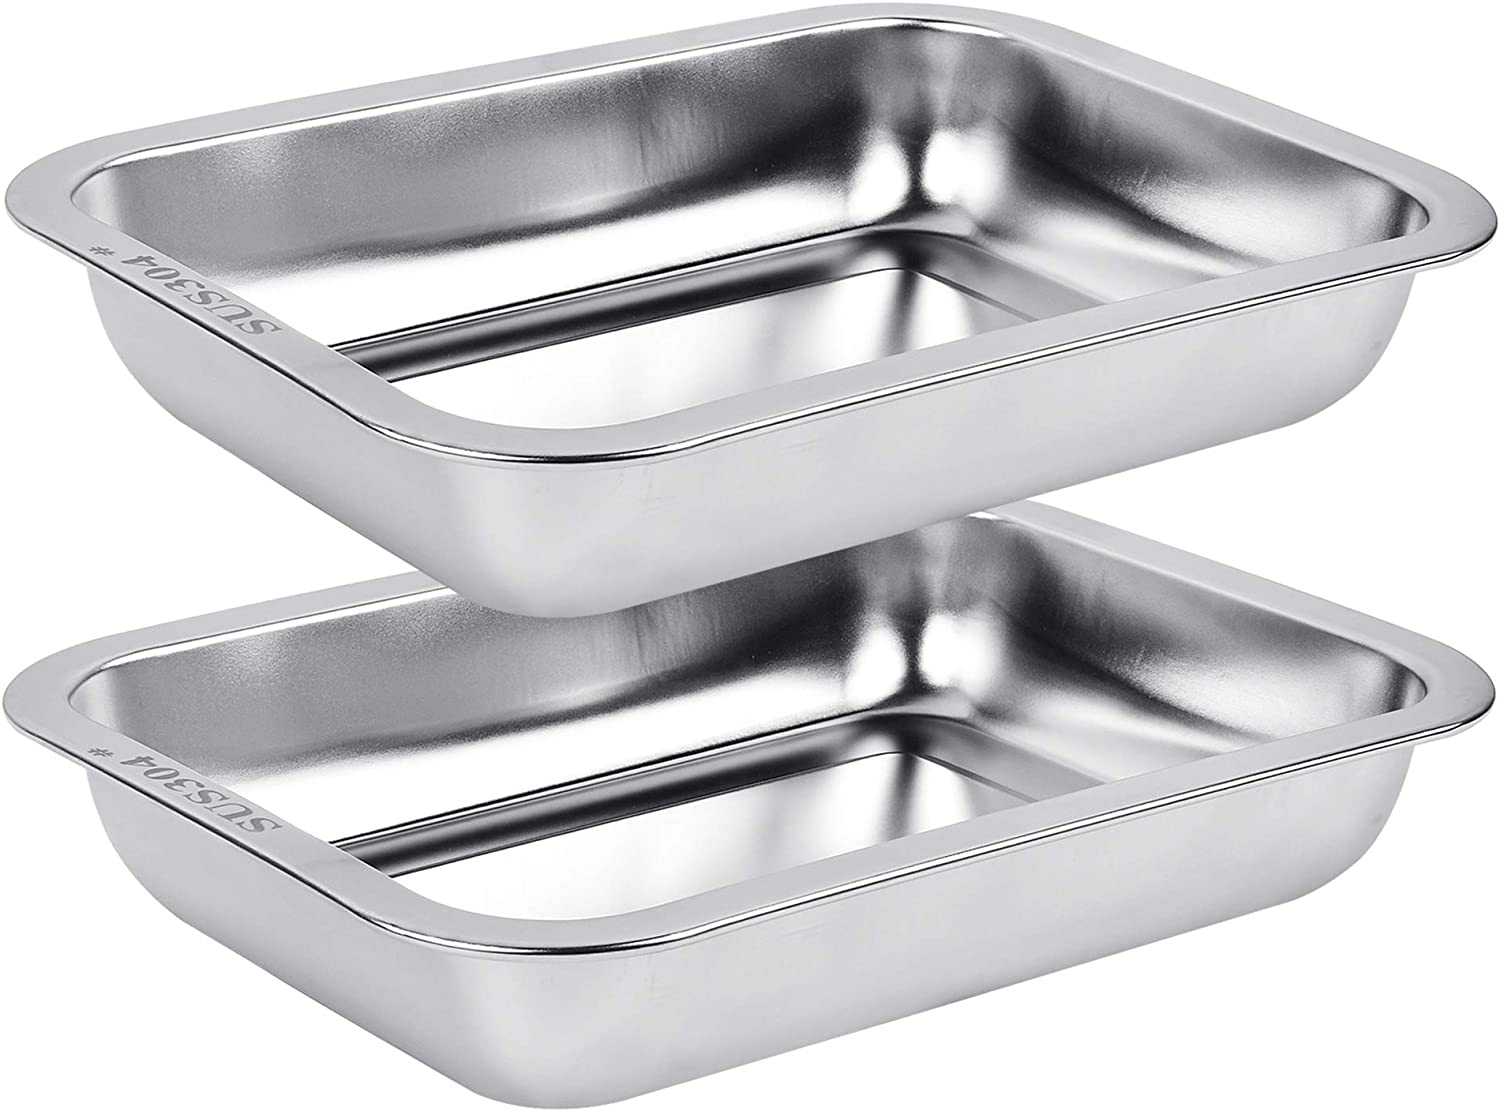 2 Pack Baking Pan, Stainless Steel Rectangular Lasagna Pans, Brownie Pan Cake Pan for Kitchen, 10 x 7.5 x 1.8 Inches, Fit for Toaster Oven, Dishwasher Safe